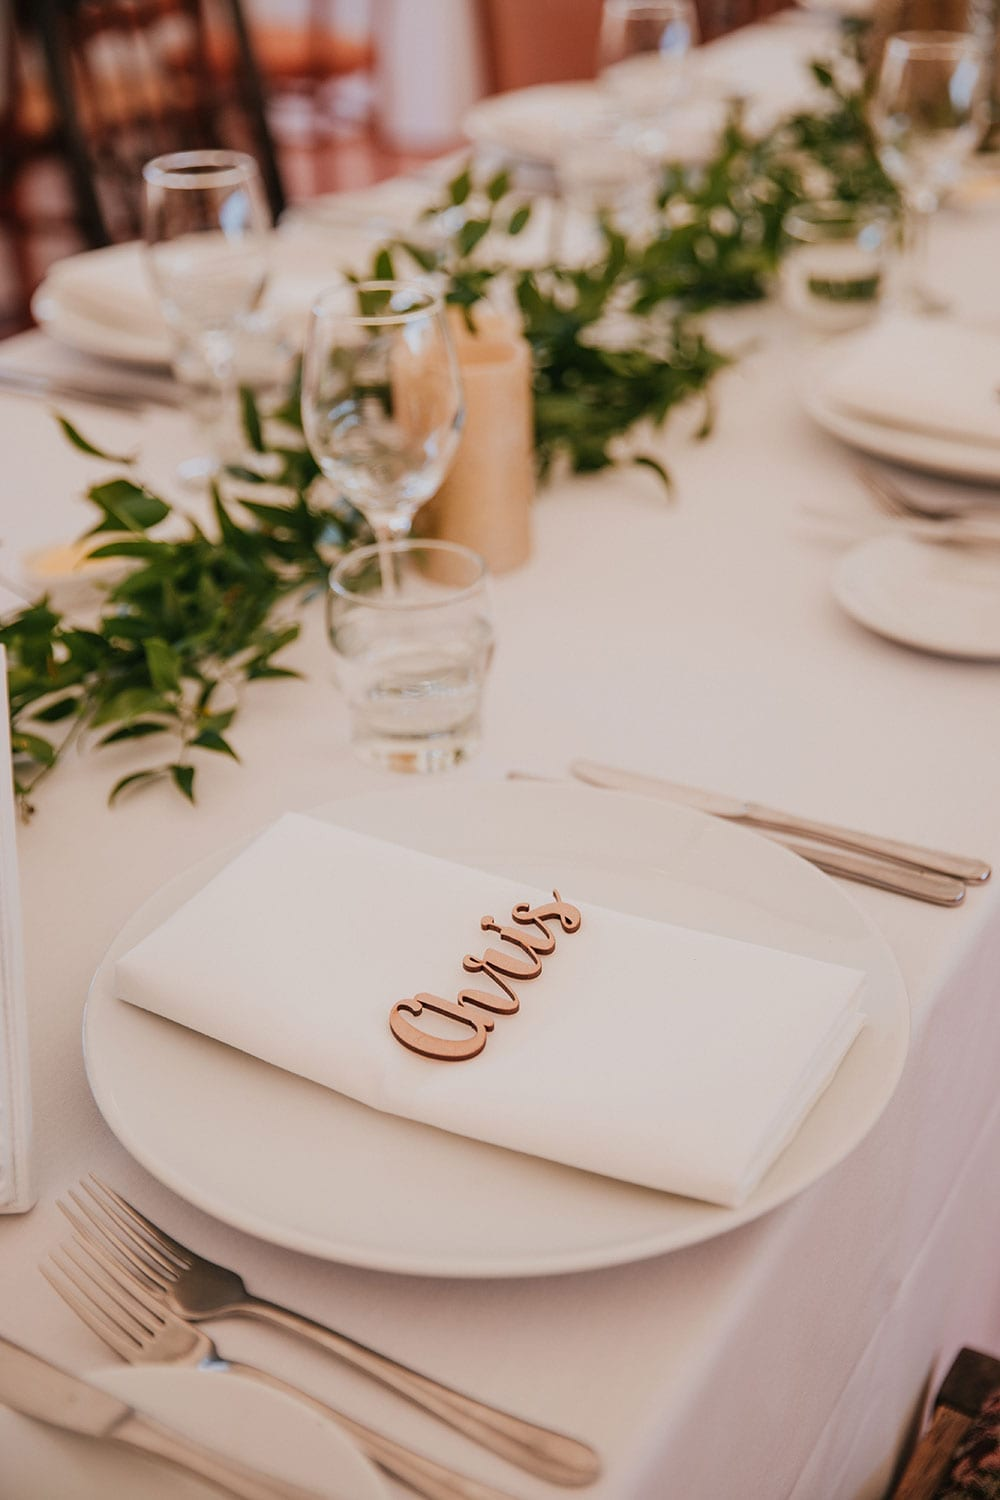 Vinka Design Features Real Weddings - place settings at reception